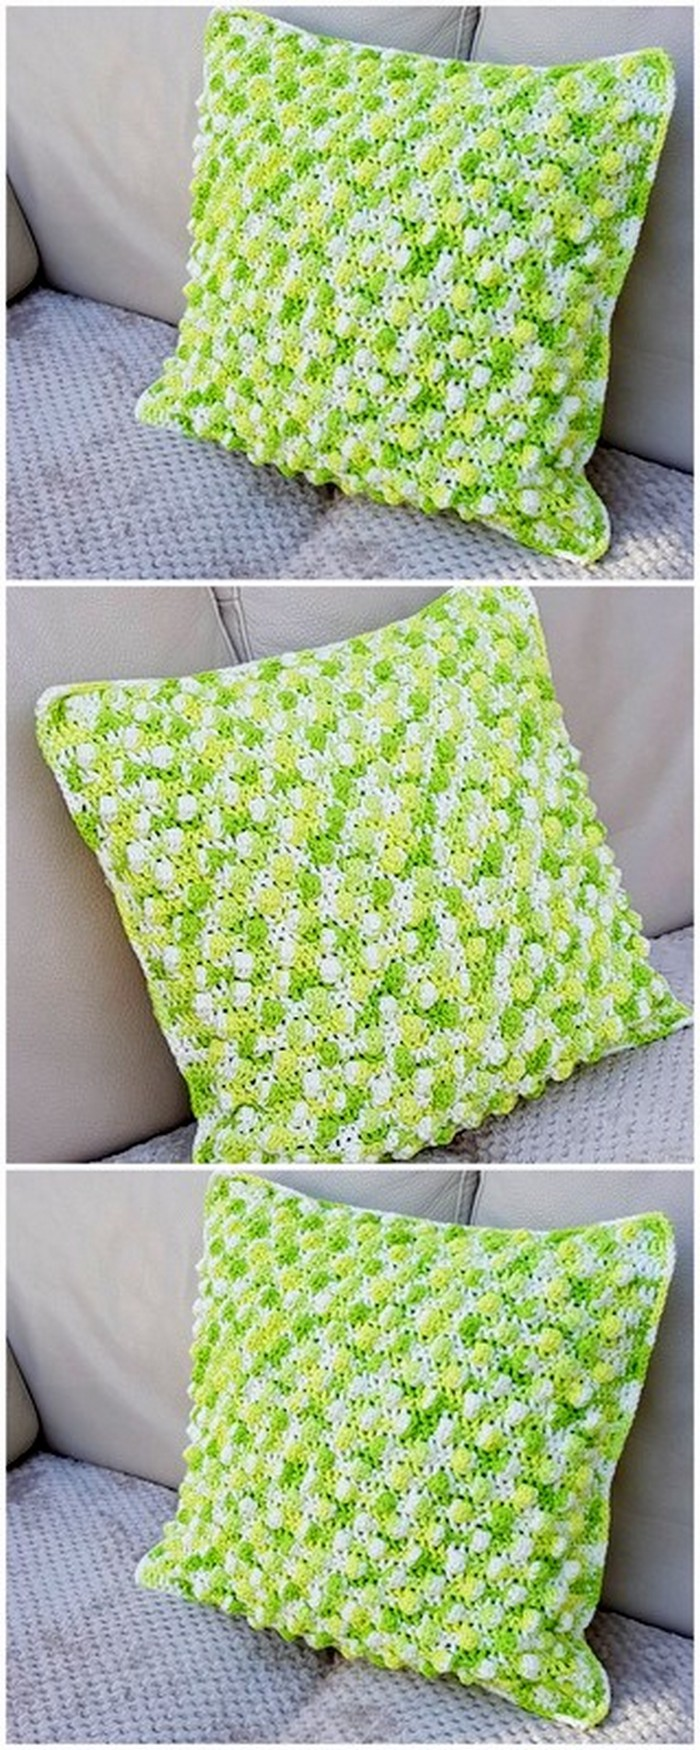 brilliant crochet pattern for cushion cover